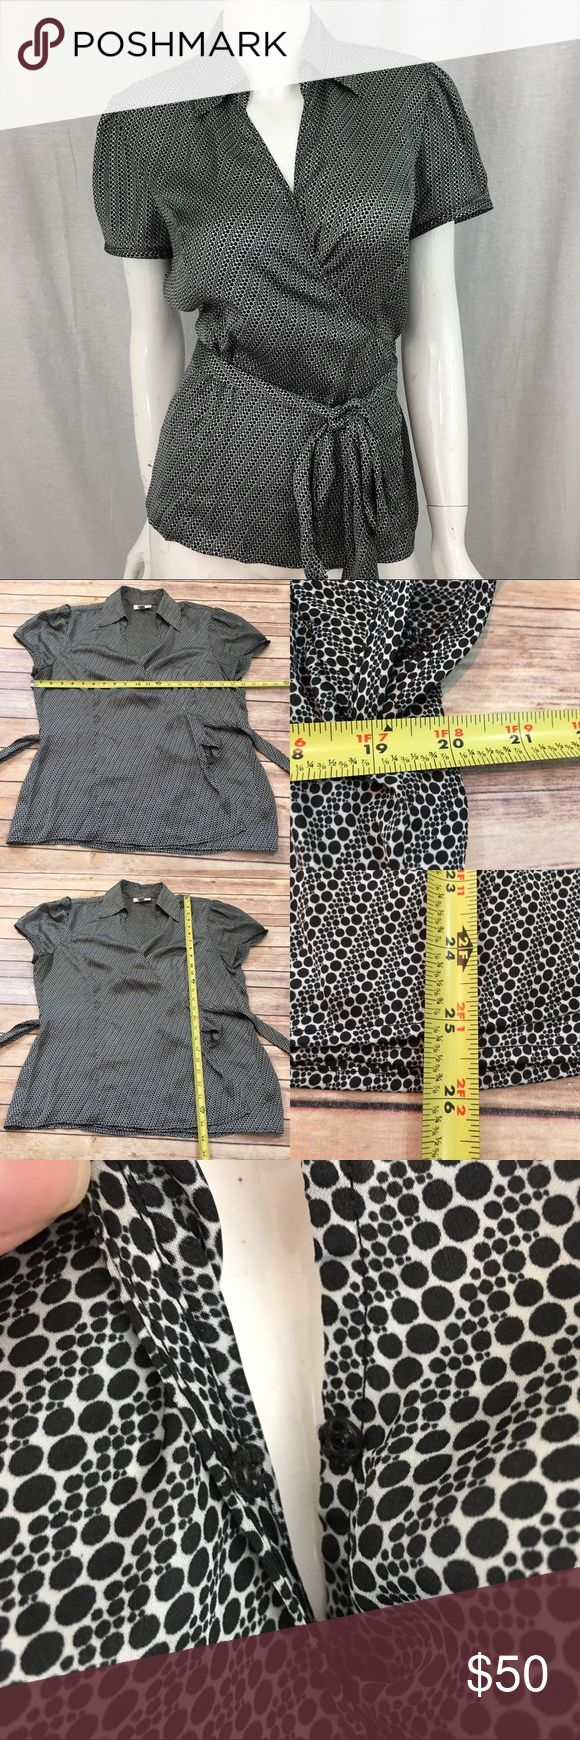 🍒LOFT 16 Short Sleeve Polka Dot Wrap Blouse Top Measurements are in photos. Normal wash wear, no flaws. A4/43  I do not comment to my buyers after purchases, due to their privacy. If you would like any reassurance after your purchase that I did receive your order, please feel free to comment on the listing and I will promptly respond.   I ship everyday and I always package safely. Thank you for shopping my closet! LOFT Tops Blouses